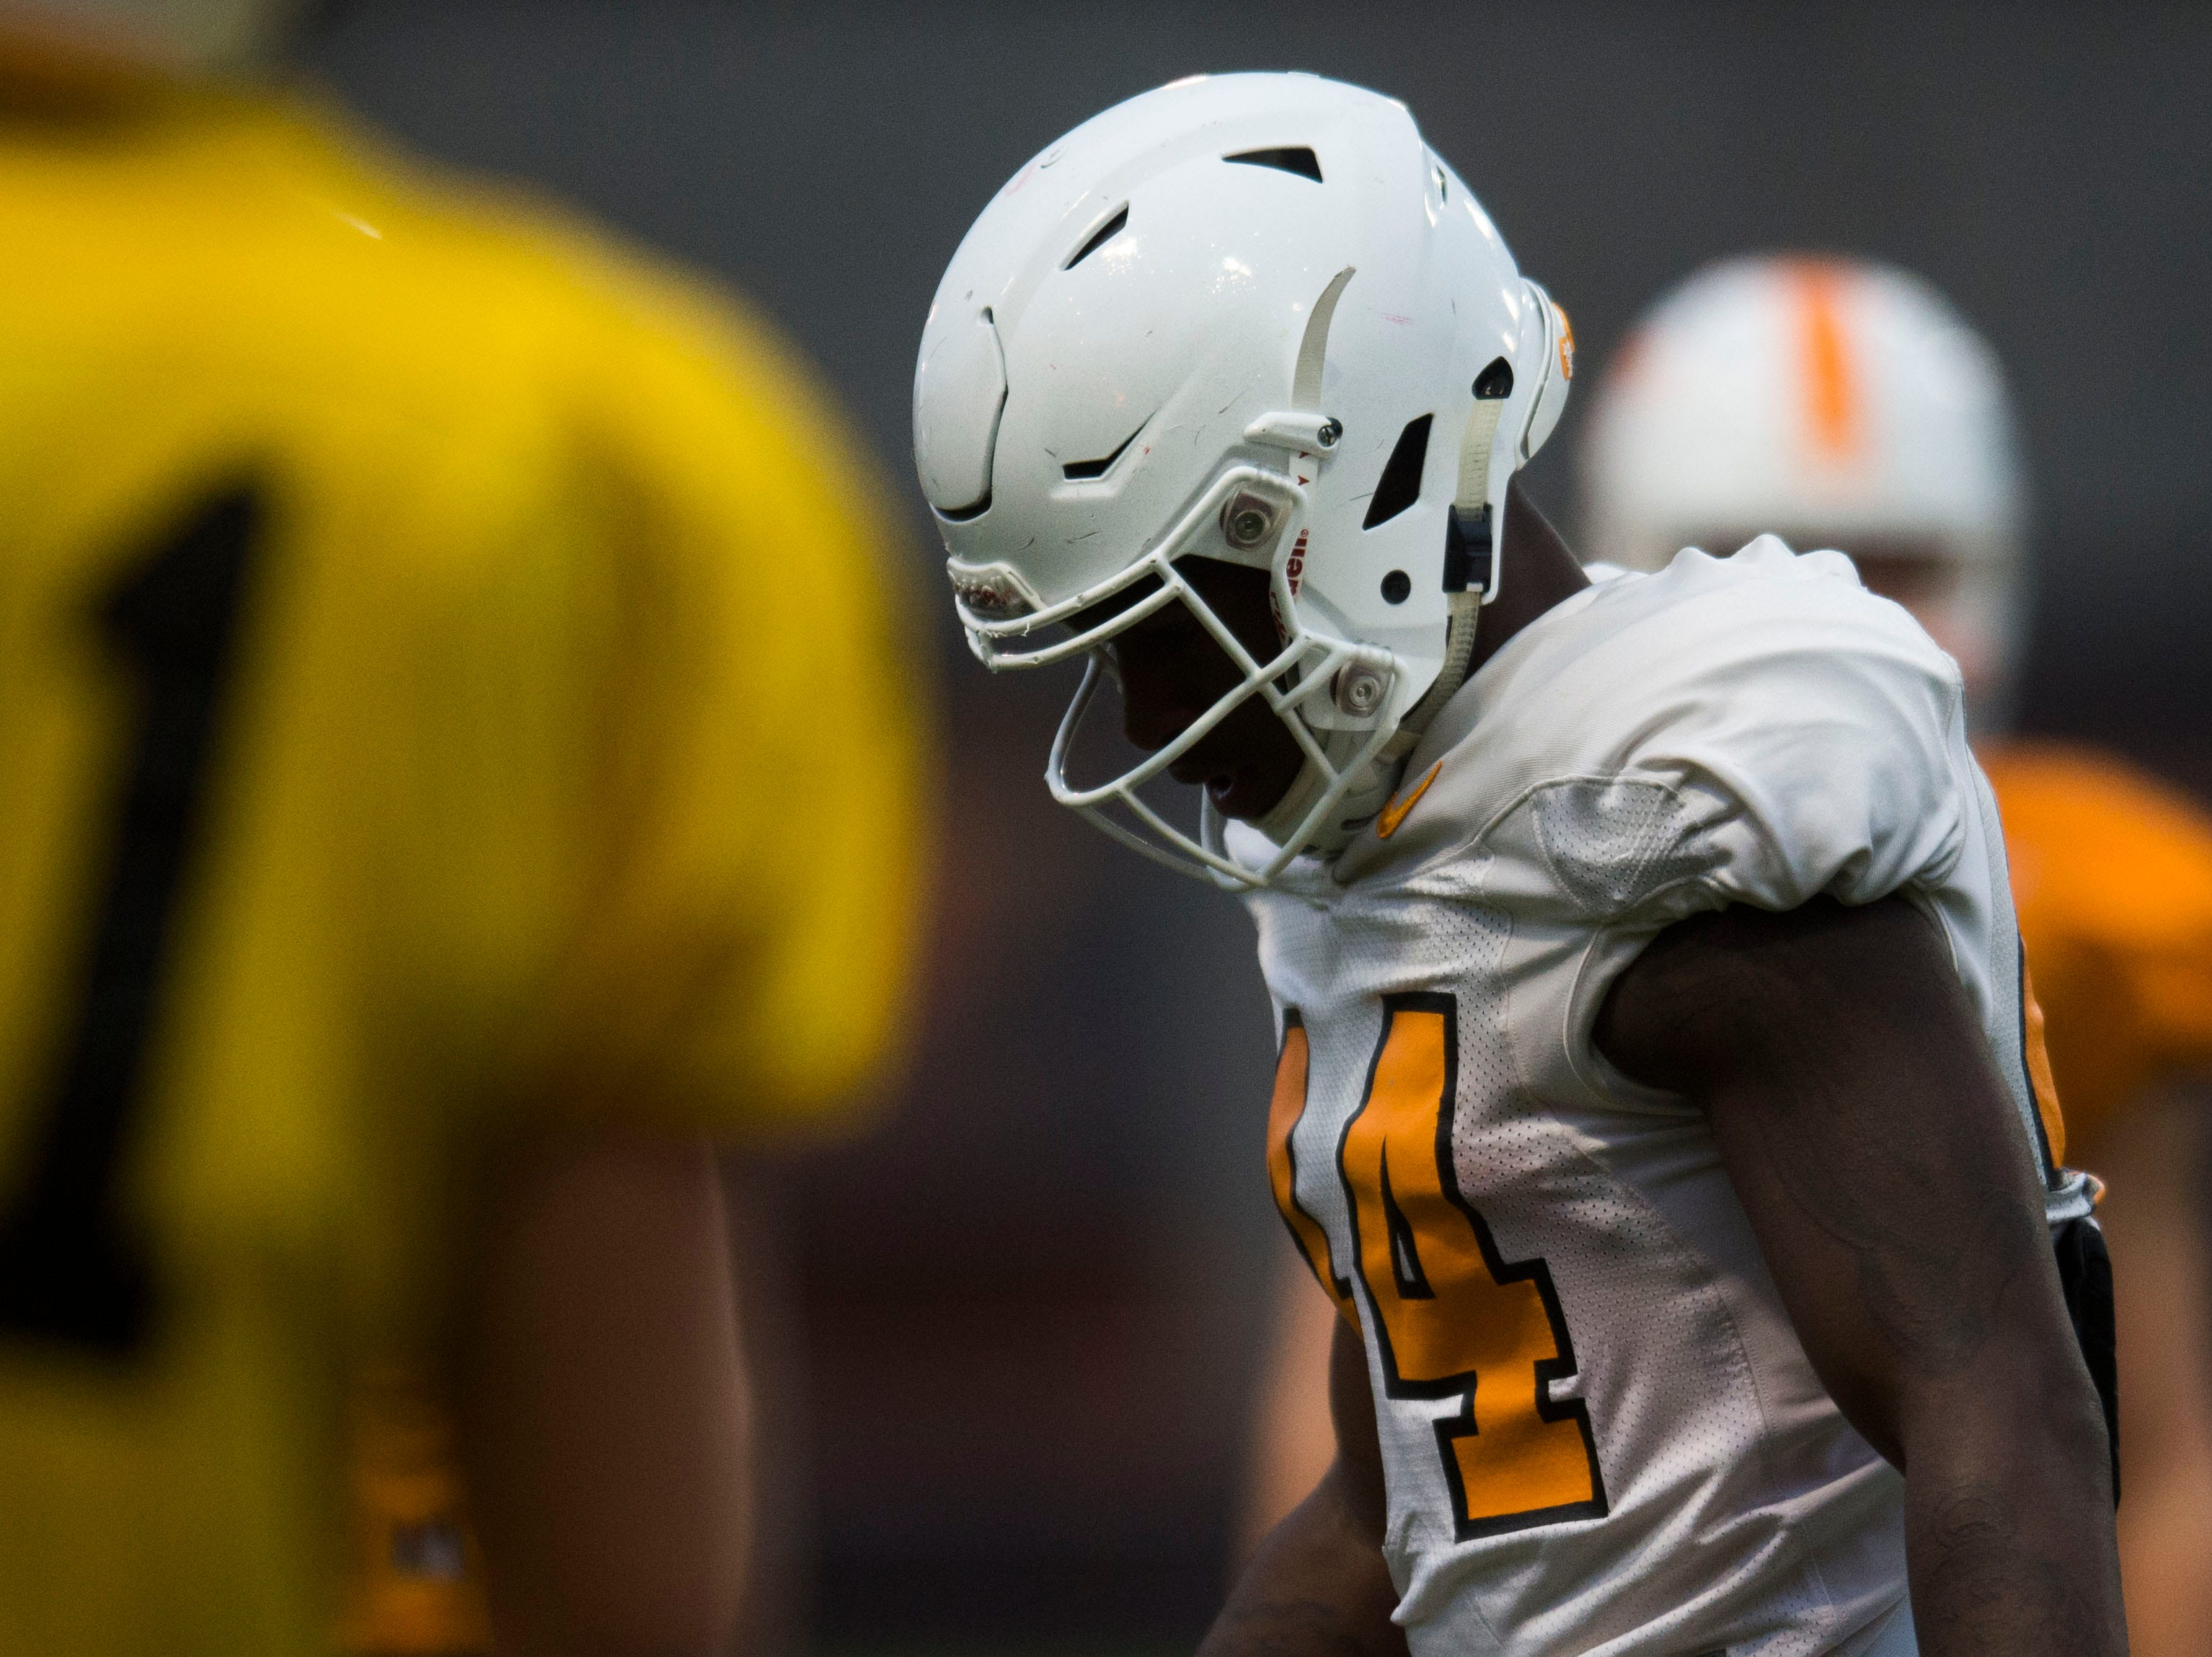 Tennessee running back Princeton Fant (44) participates in a drill during a University of Tennessee football practice, Tuesday, Nov. 13, 2018.